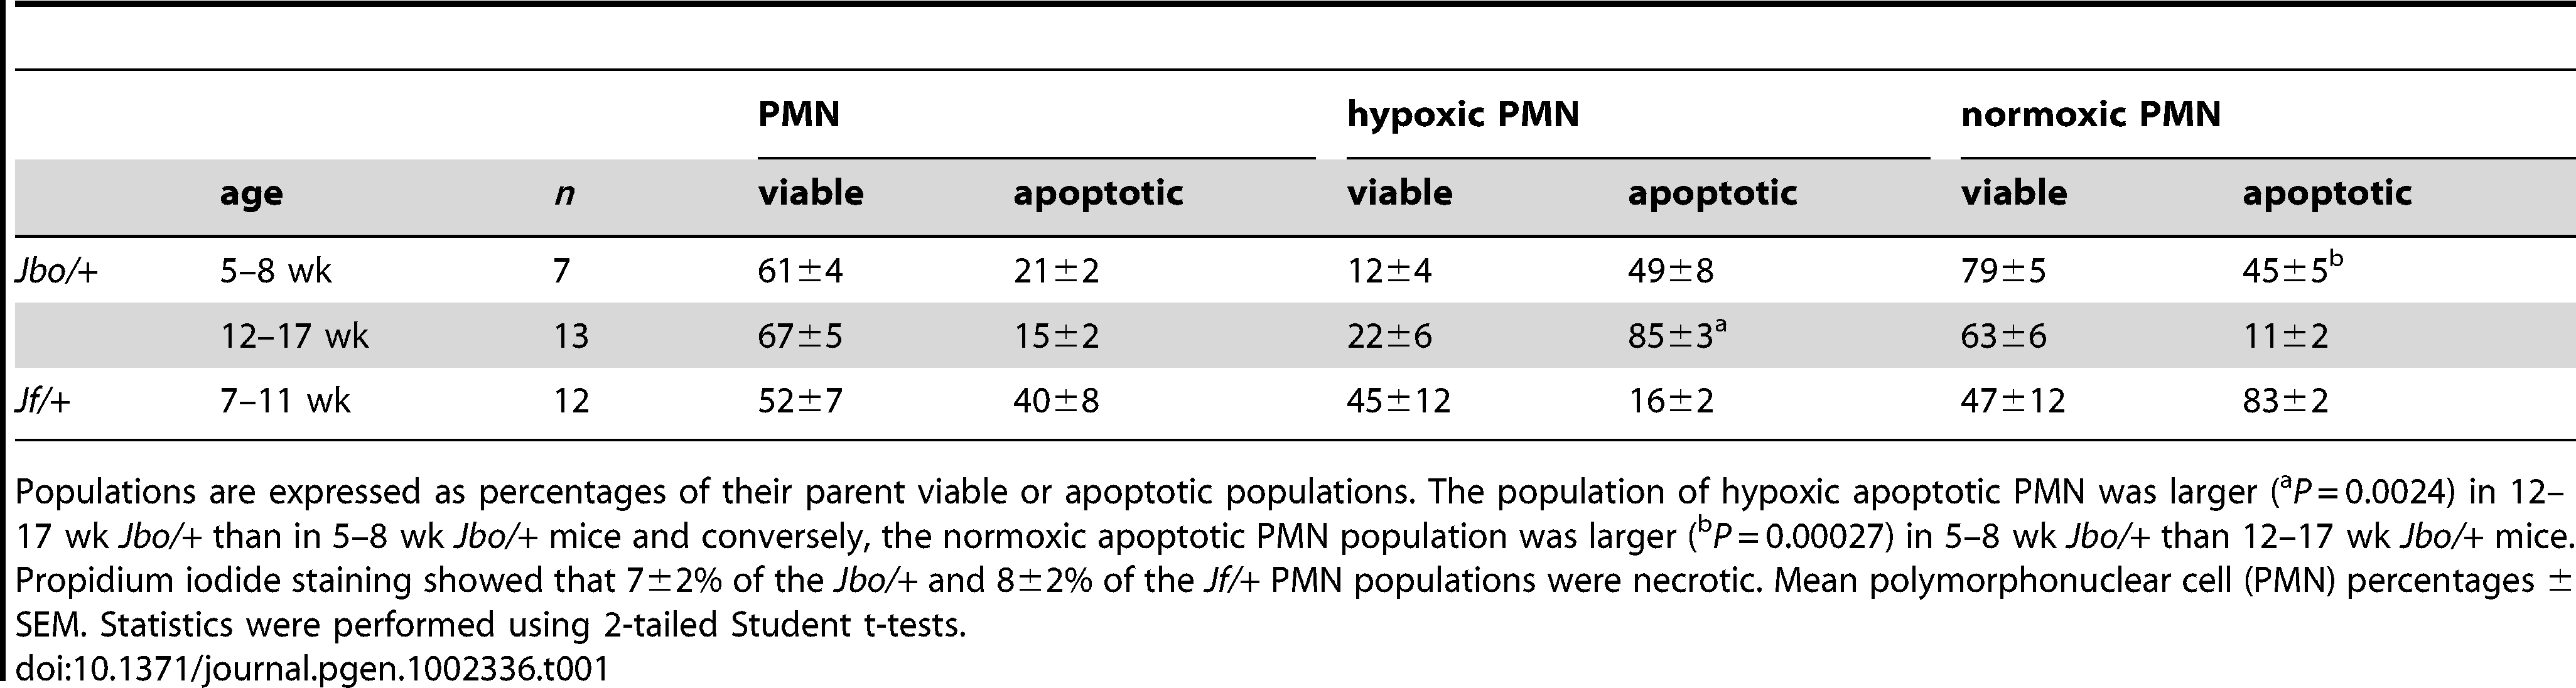 Viable and apoptotic PMN populations in bulla fluids of <i>Jbo/+</i> and <i>Jf/+</i> mice are hypoxic.